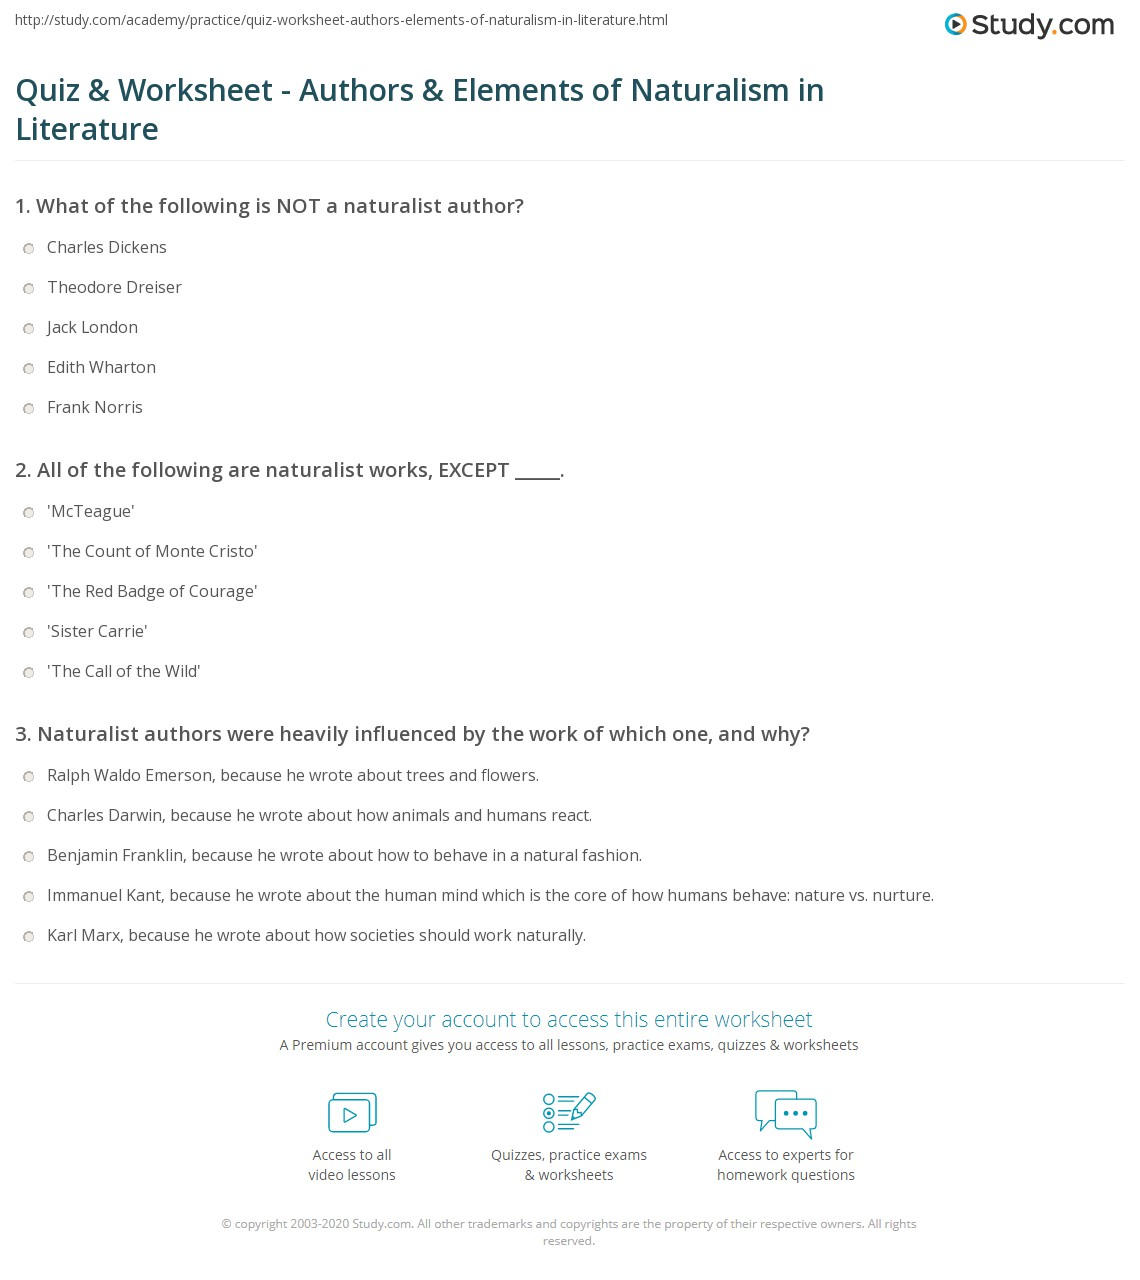 Quiz & Worksheet - Authors & Elements of Naturalism in Literature  worksheets, education, free worksheets, multiplication, math worksheets, and printable worksheets Elements Of Literature Worksheet 2 1350 x 1140